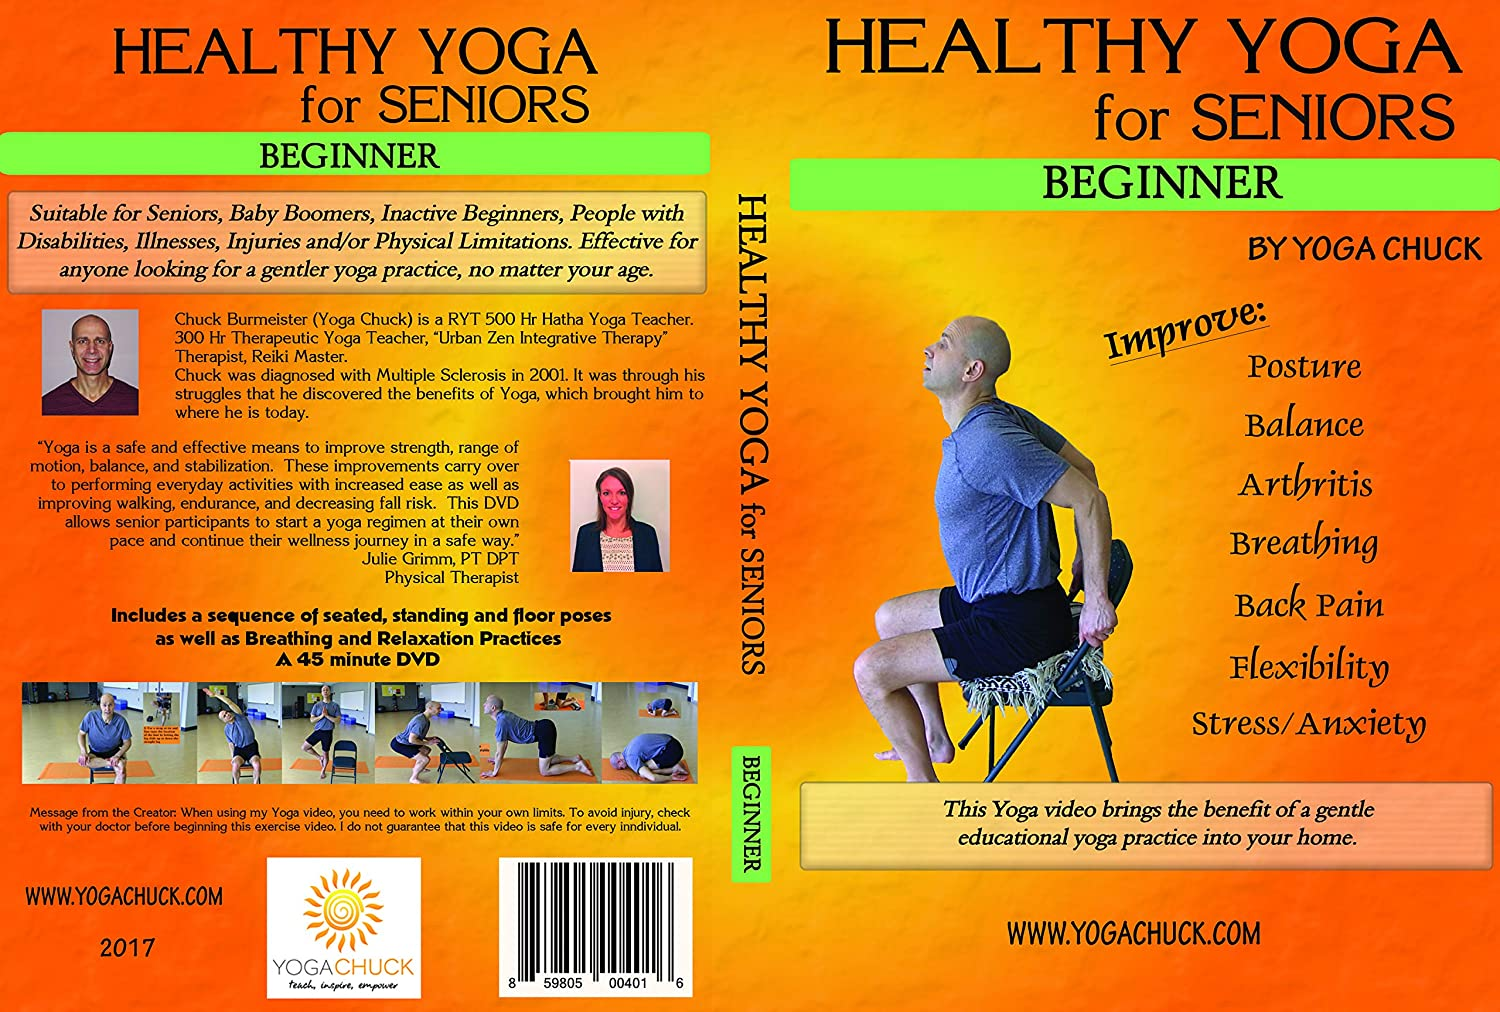 Amazon.com: Yoga for Seniors - 3 DVD Set: Beginner ...